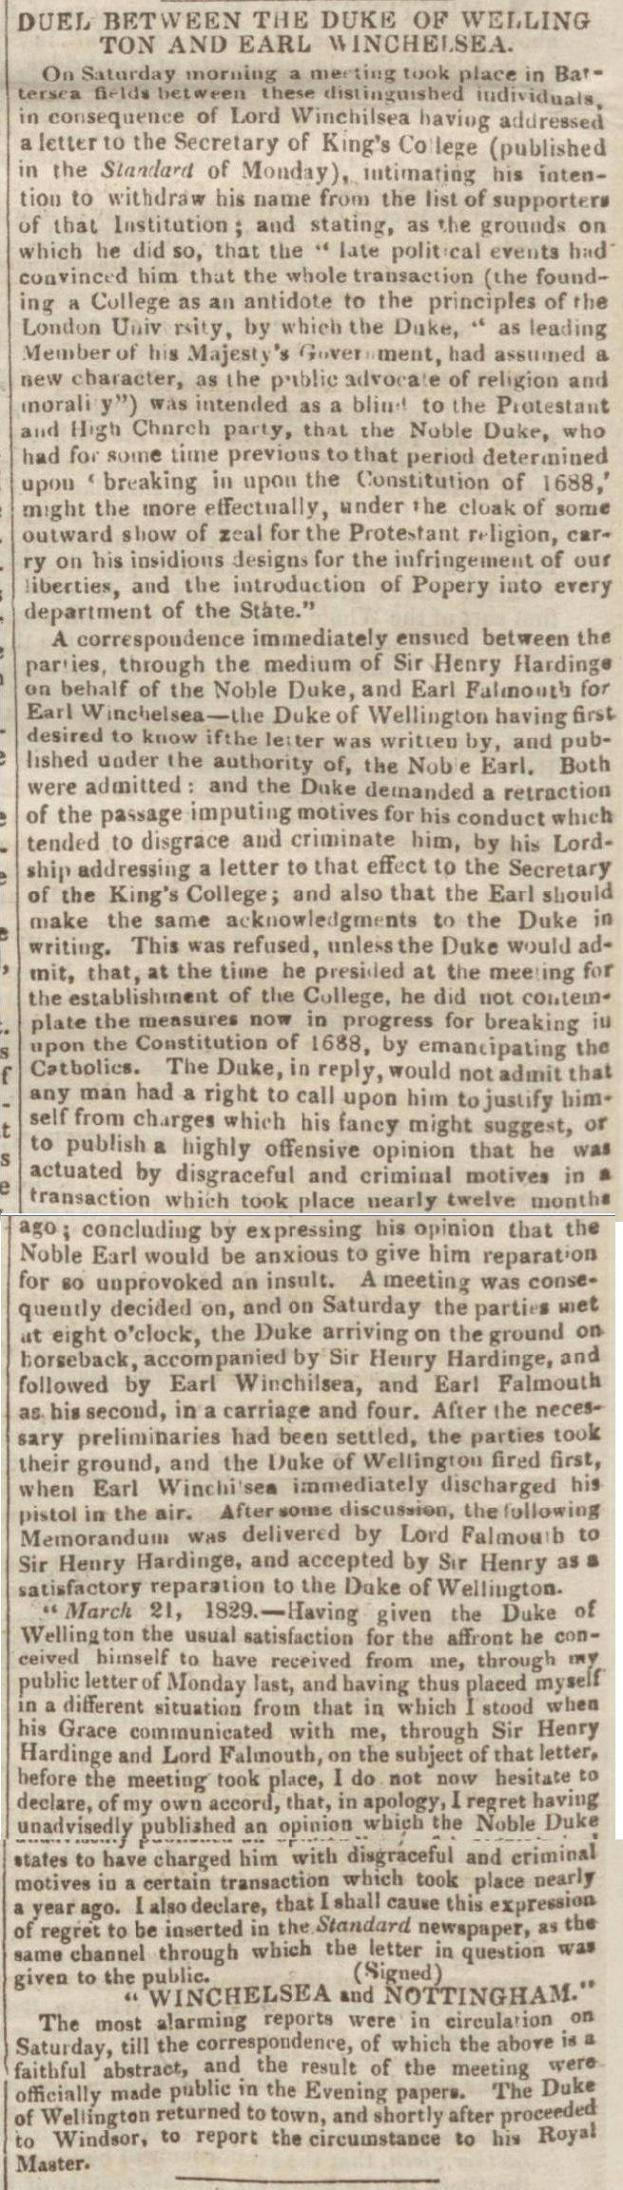 newspaper report about the duel between the duke of wellington and earl of winchelsea